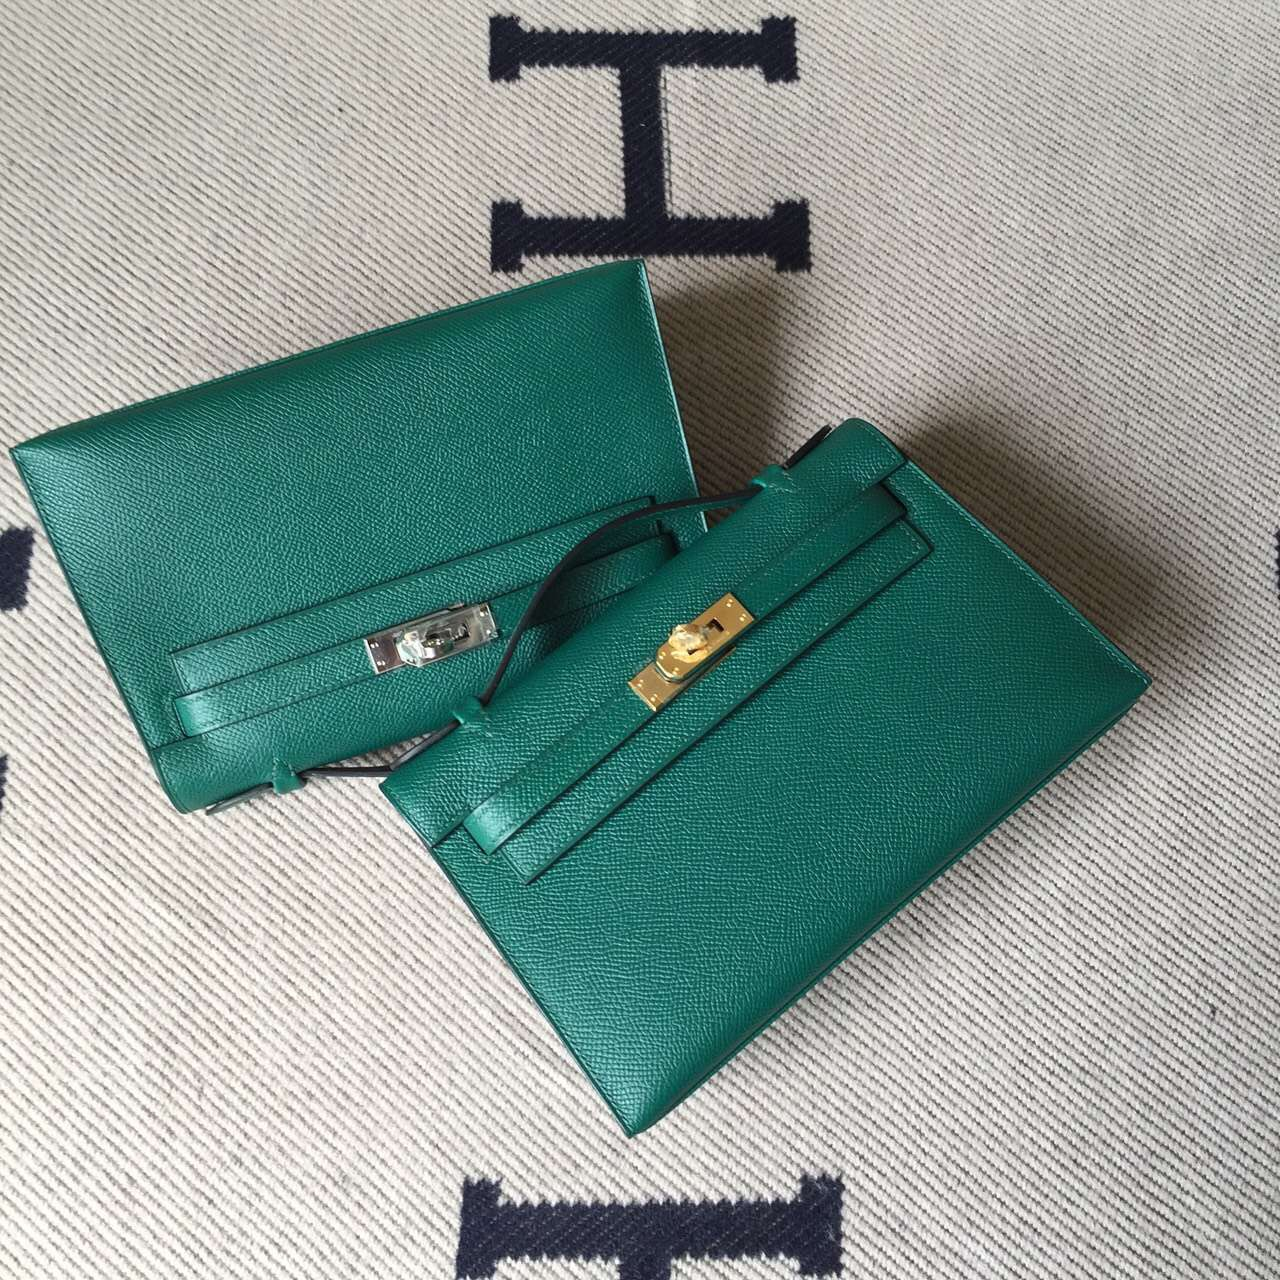 Discount Hermes Minikelly Pochette22CM Bag Z6 Malachite Green Epsom Leather